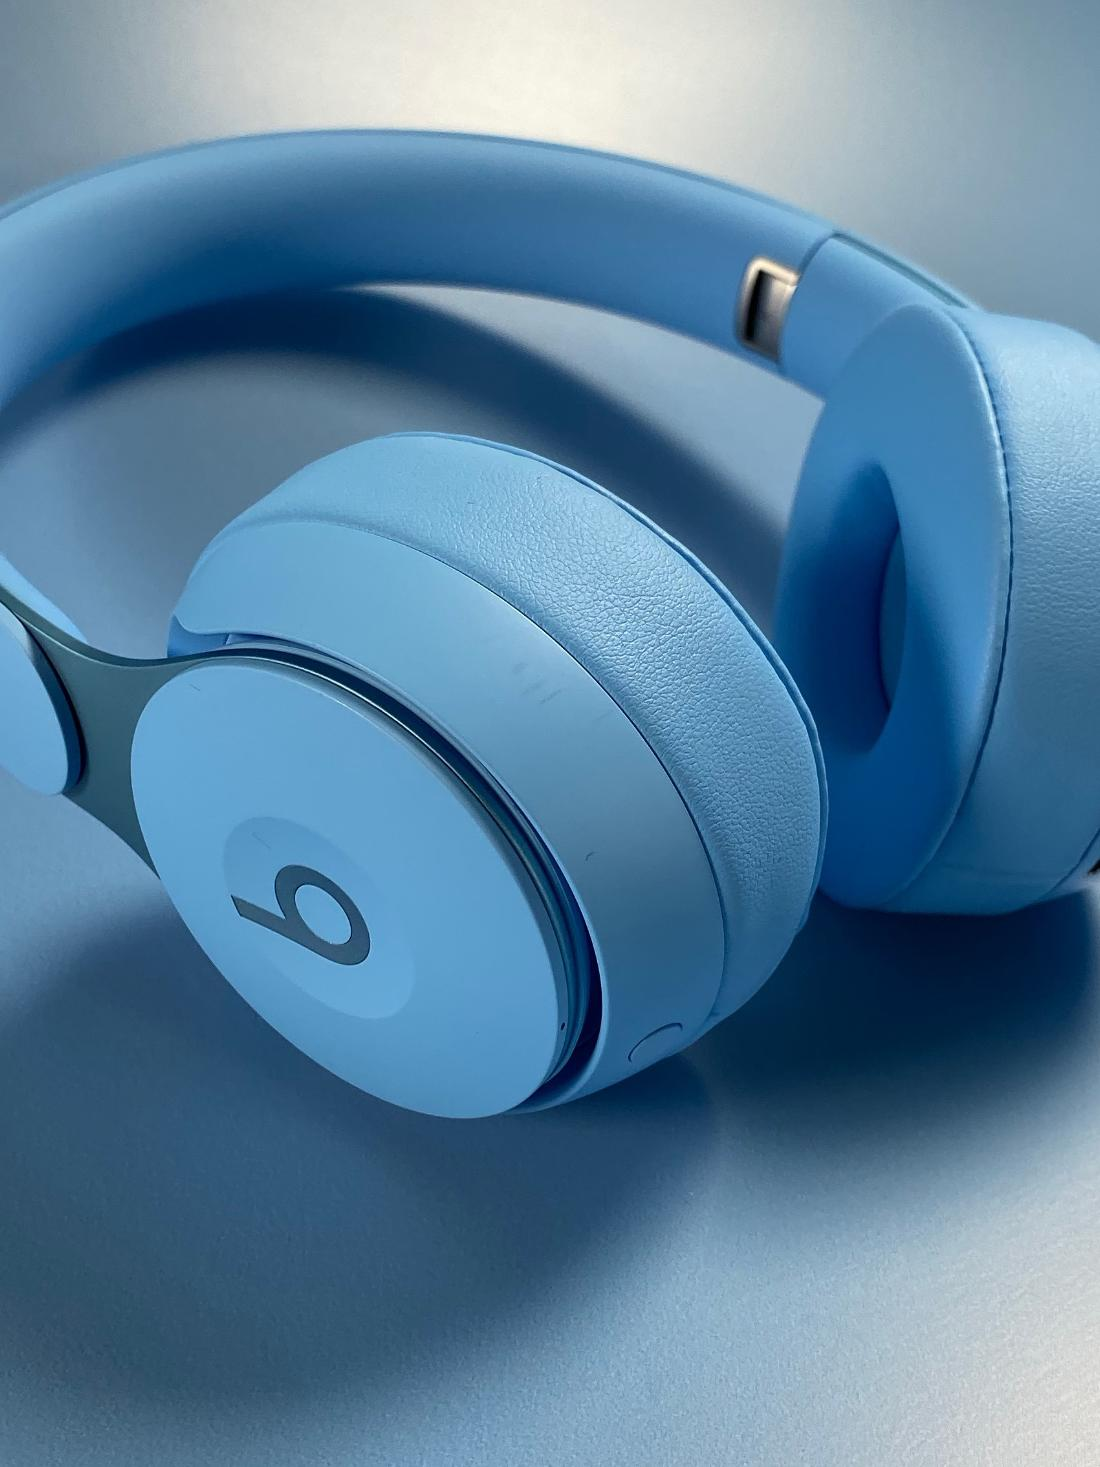 Beats Solo Pro Sale Save 50 On These Noise Canceling On Ear Headphones